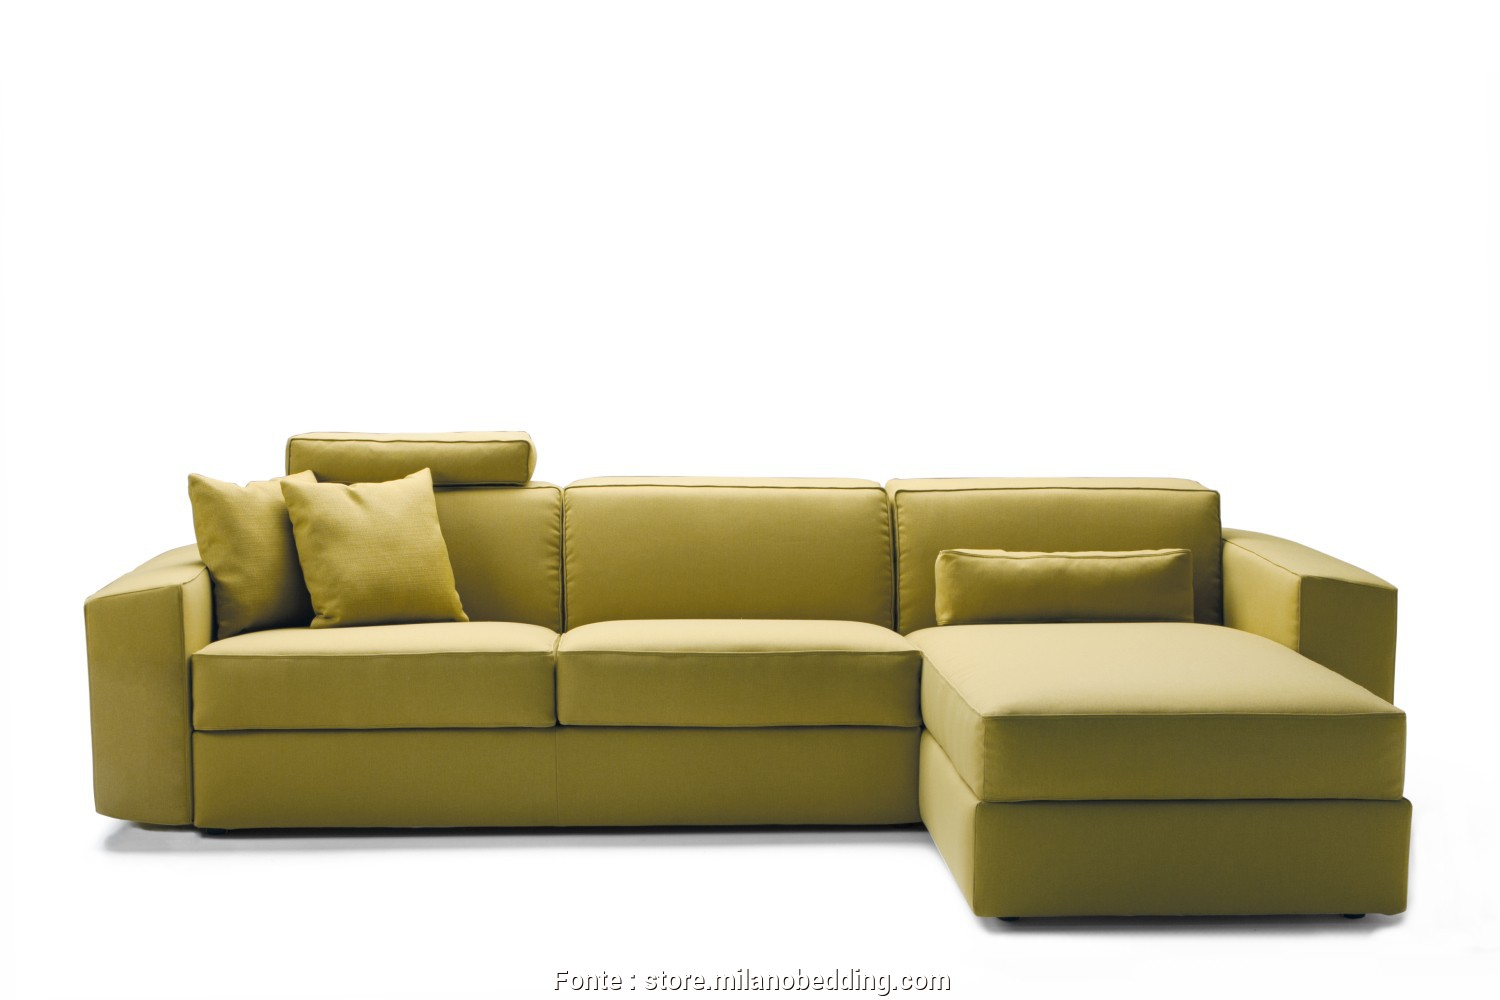 Divano Chaise Longue Grande, Esclusivo Melvin Sofa, With Storage Chaise Longue Completed With An Optional Headrest